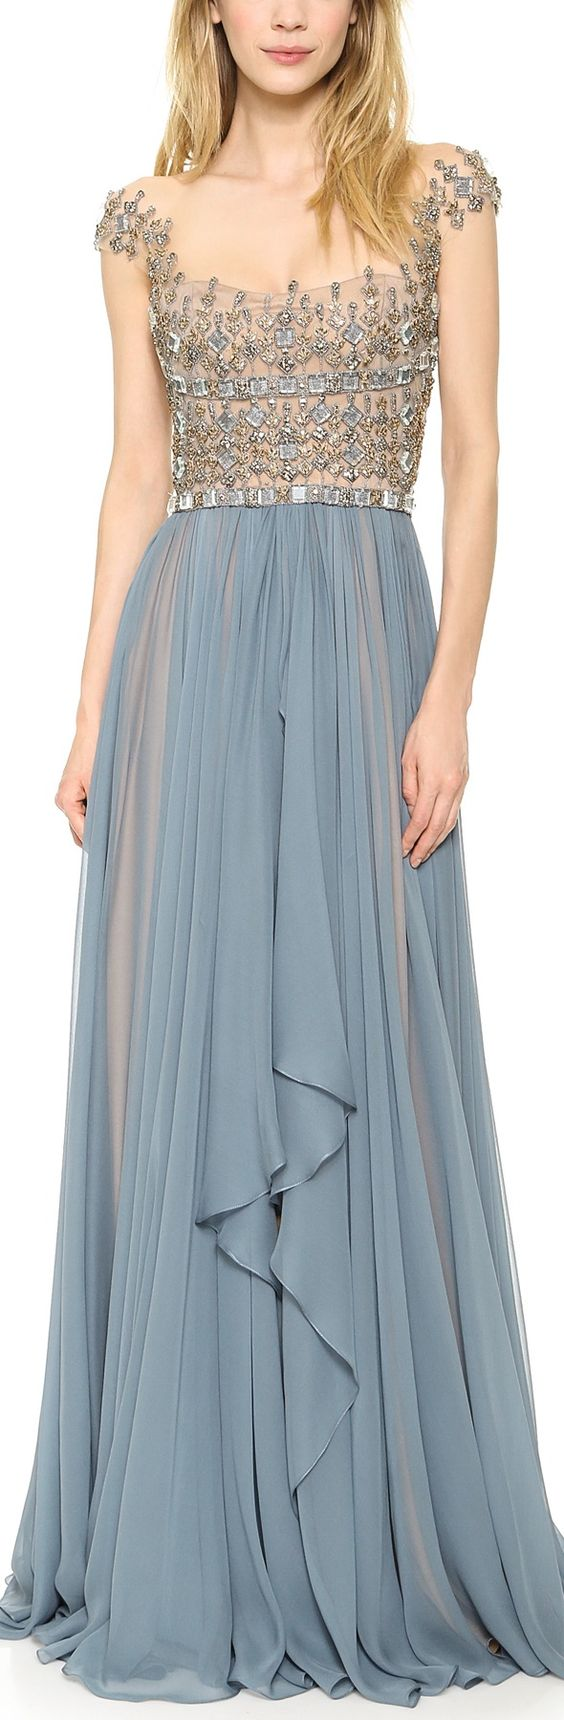 Reem Acra Embroidered Illusion Drop Shoulder Gown Blue Smoke: